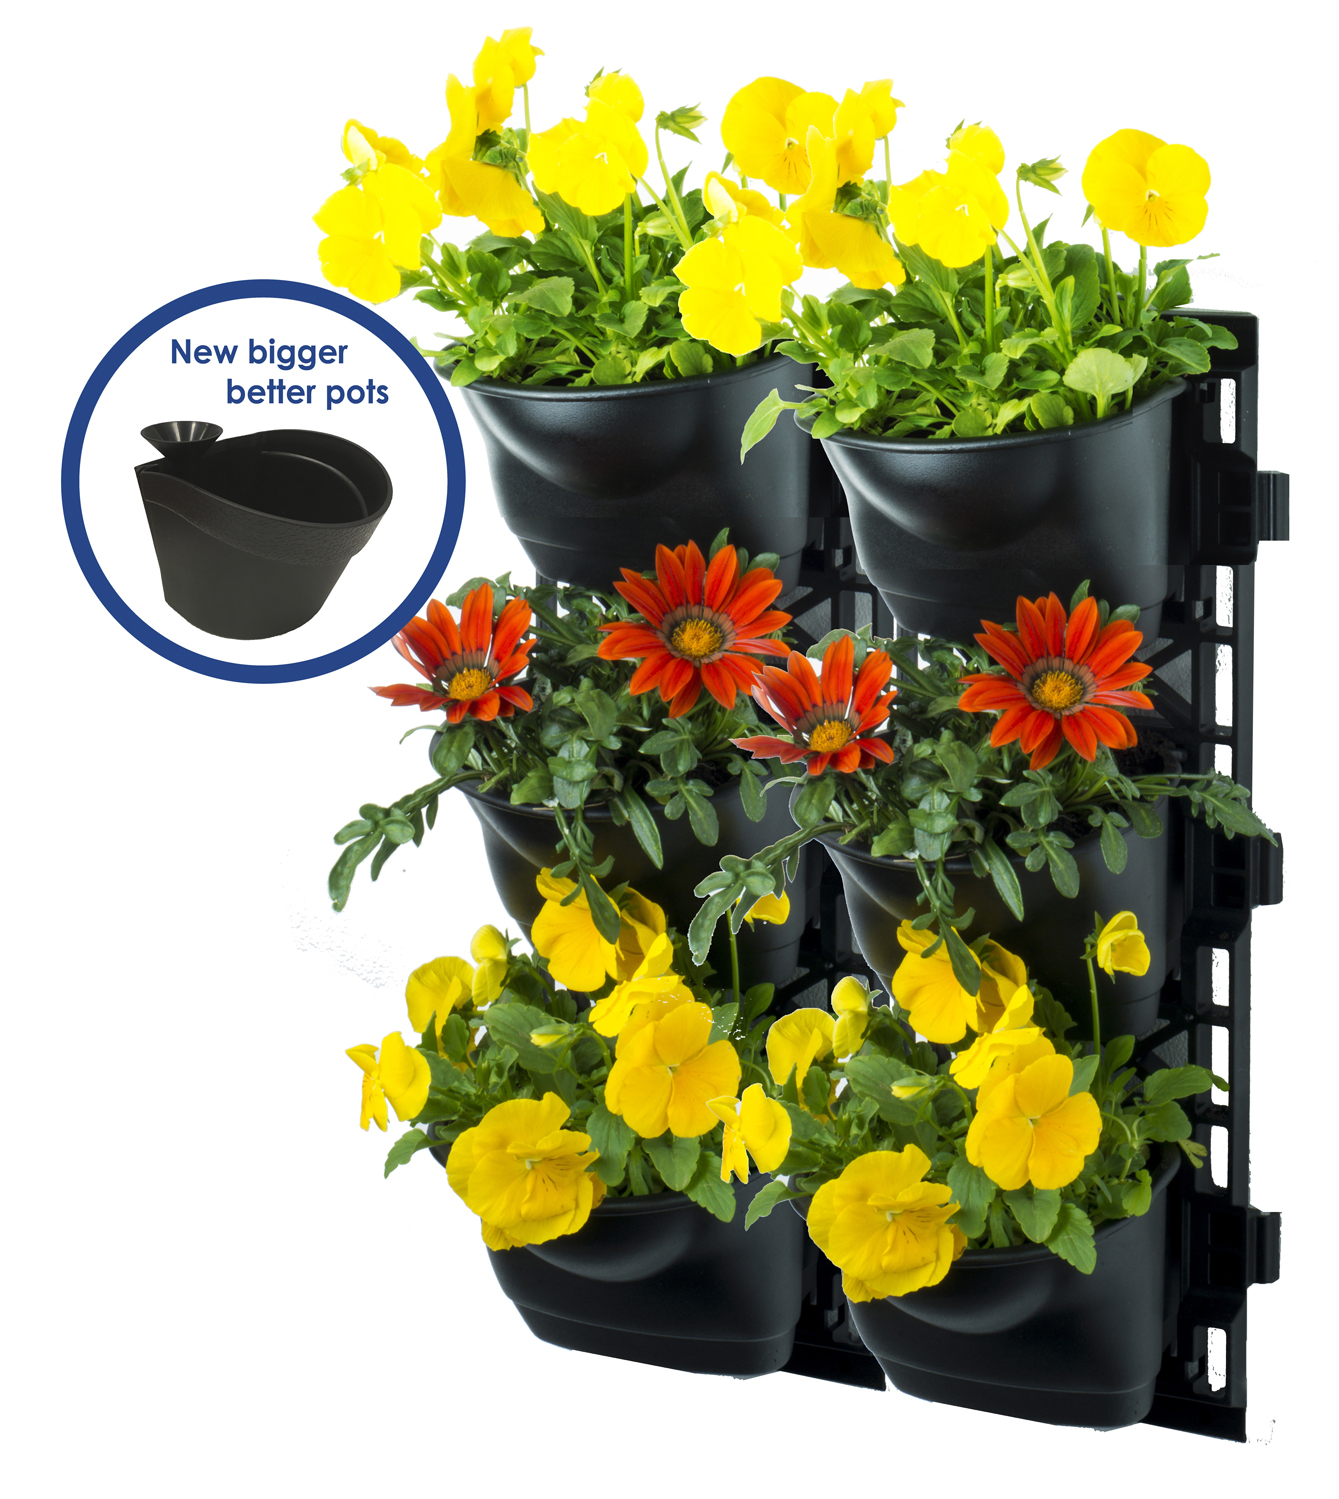 us logon or expandable blogspot vertical m email technic pictures modules on and verticalgardenconcept system planting for sdn marketing bhd com to more by information network our garden